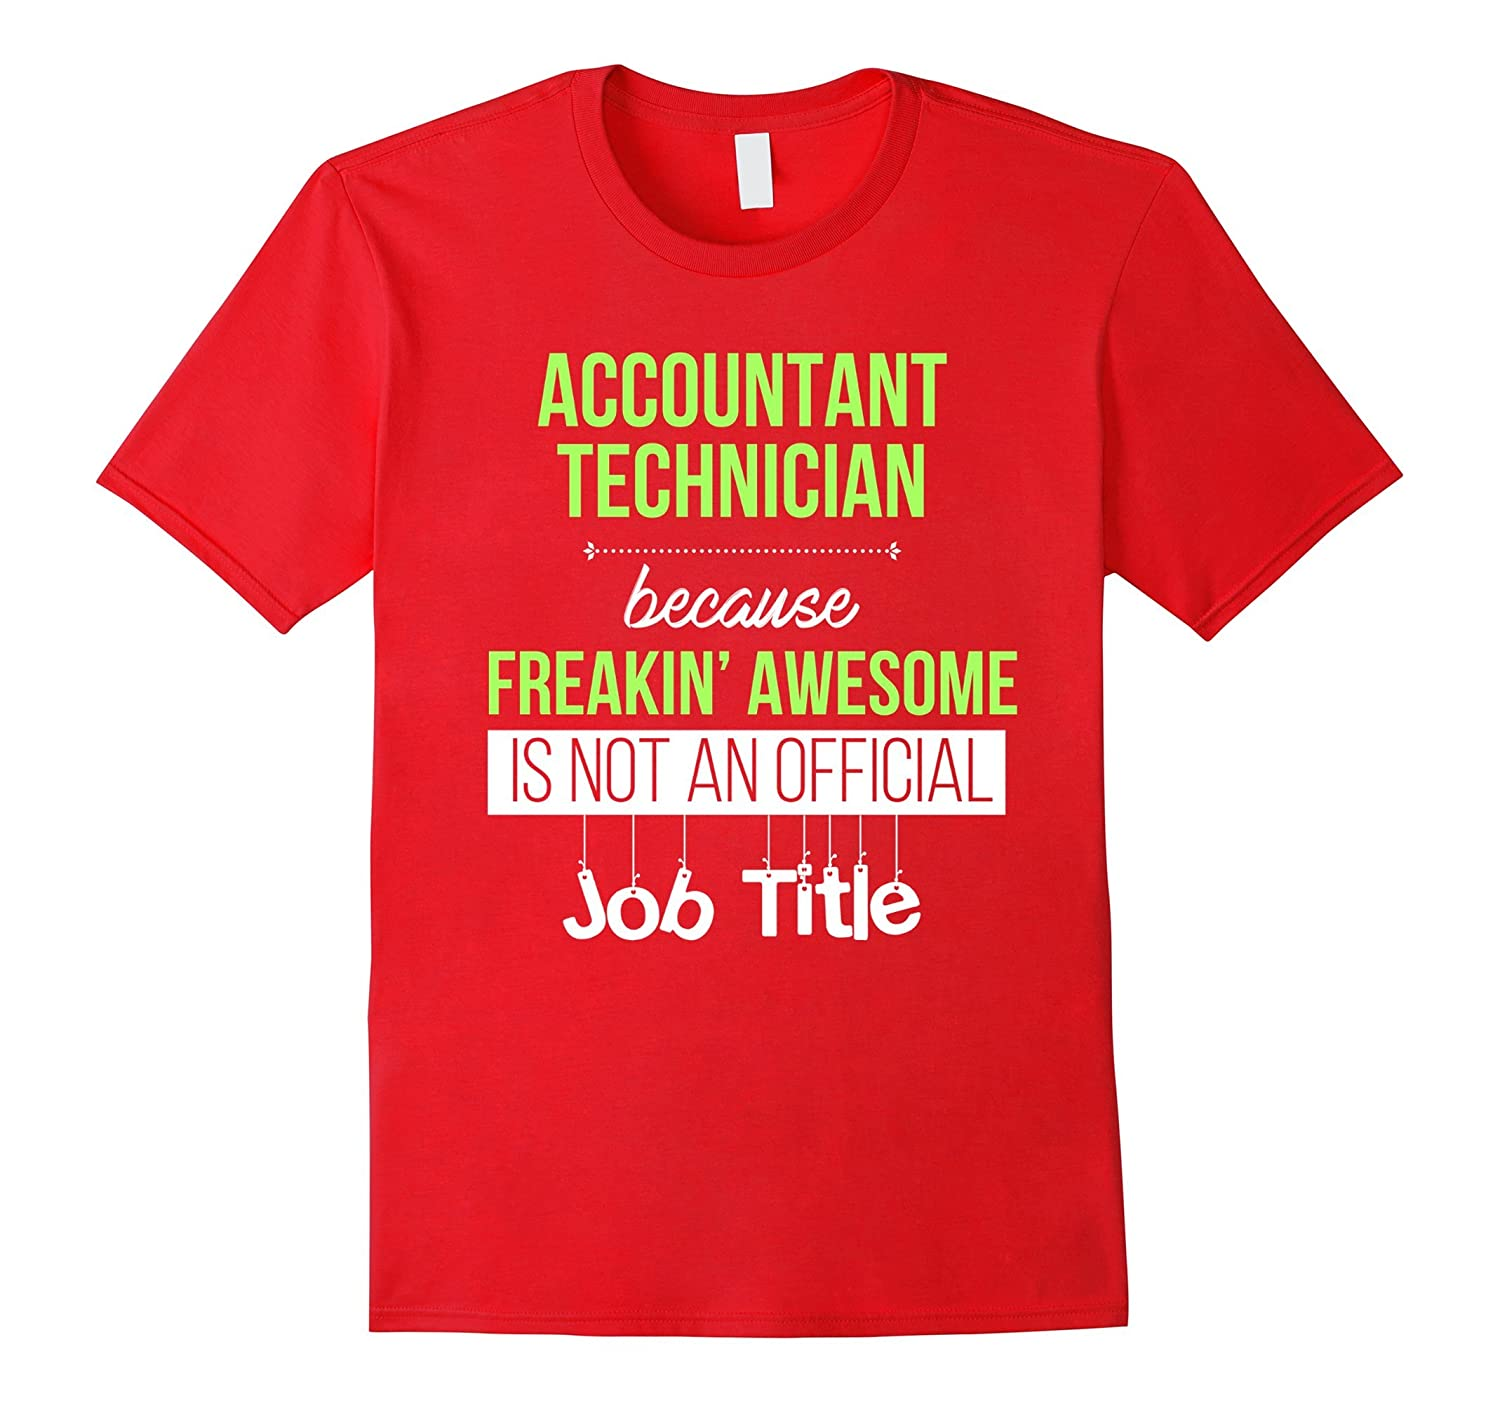 Accounting technician T-shirt-Awesome is not an official job-TJ